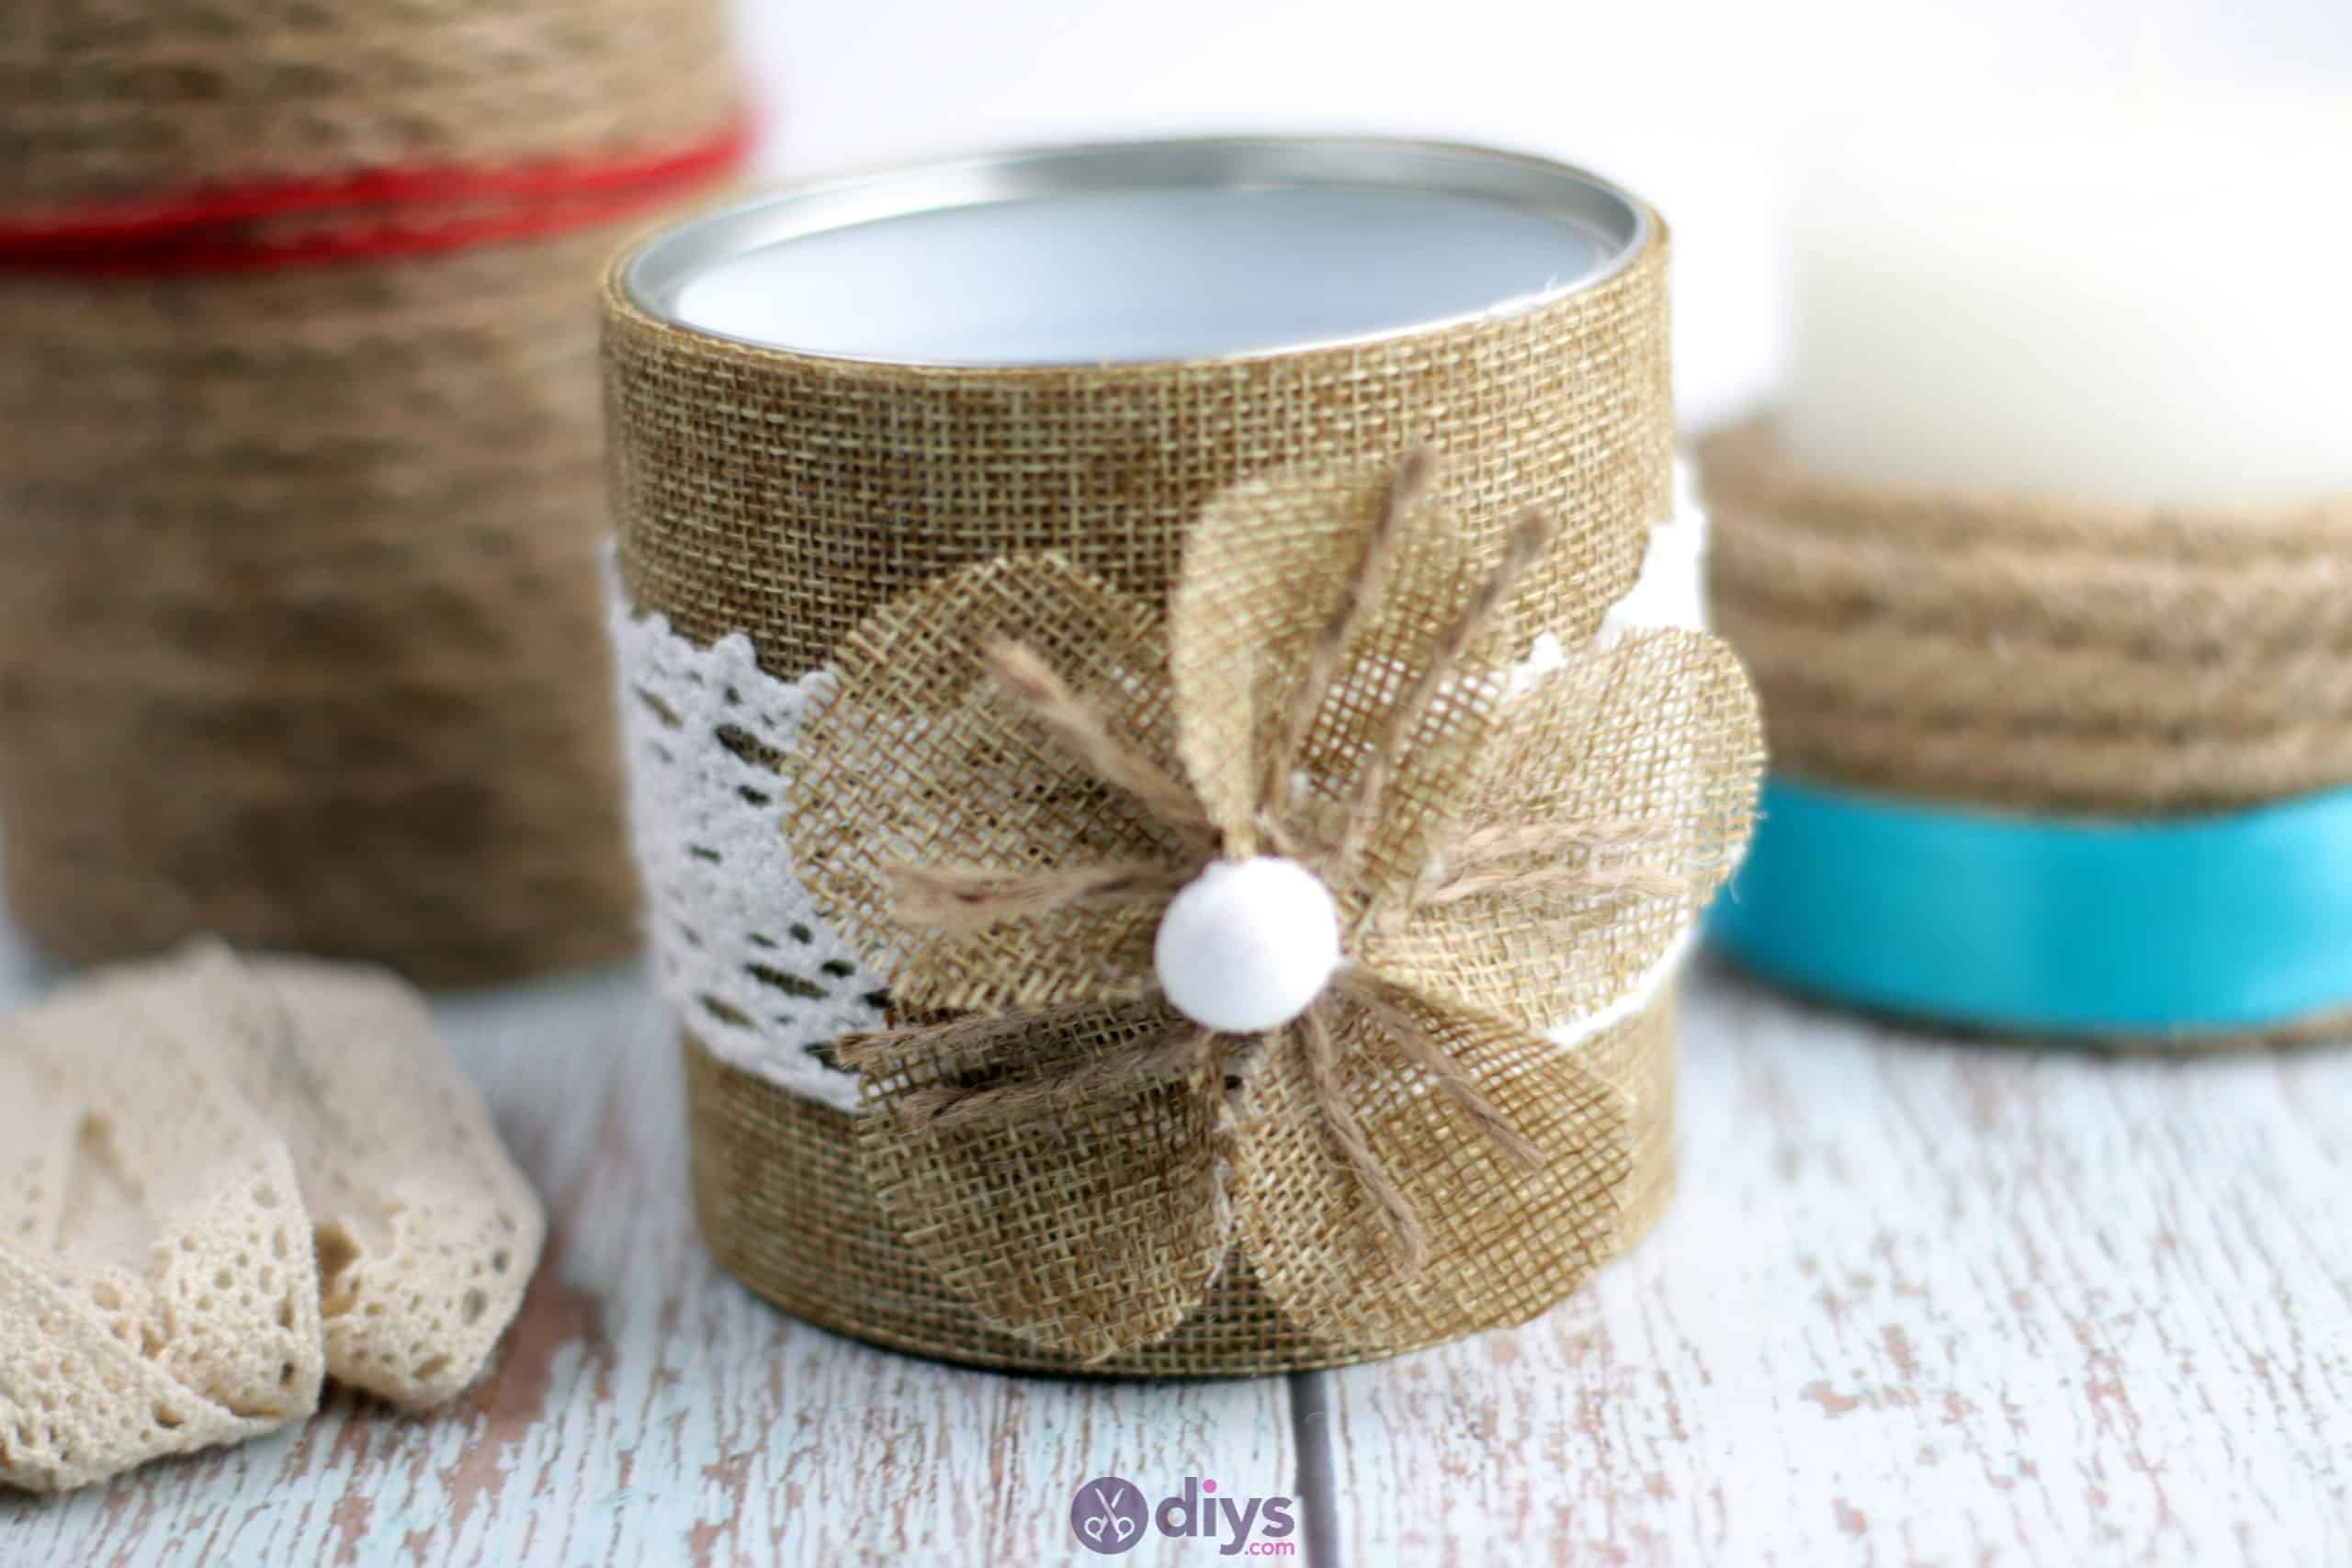 Diy rustic tin can container step 13